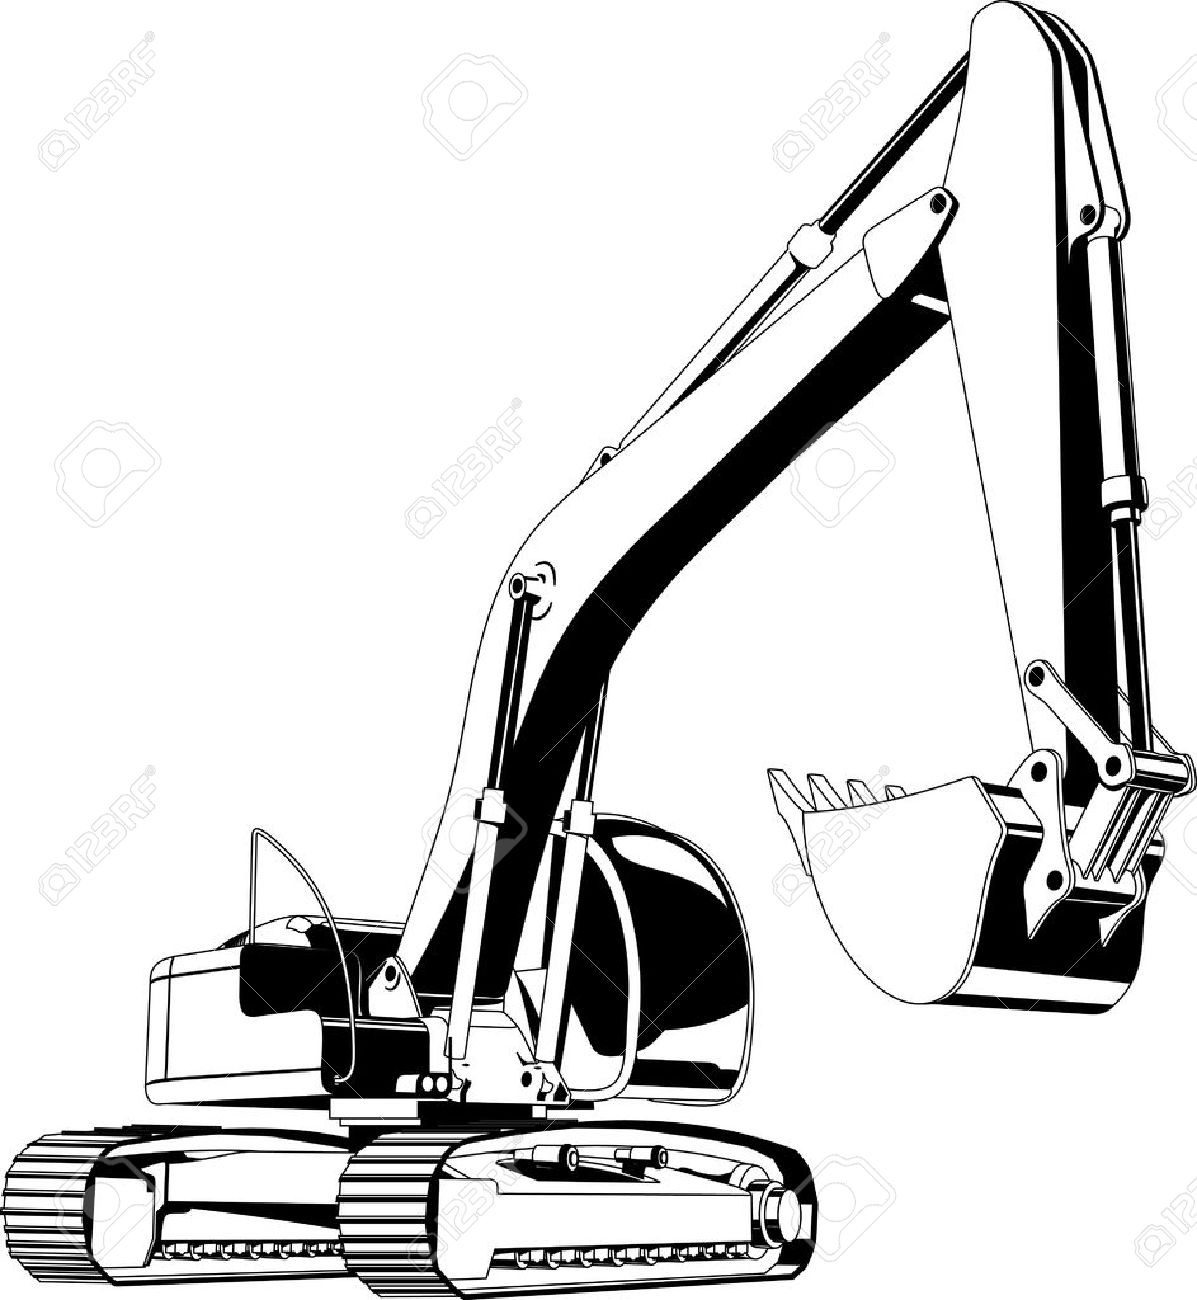 Excavator clipart black and white 6 » Clipart Station.